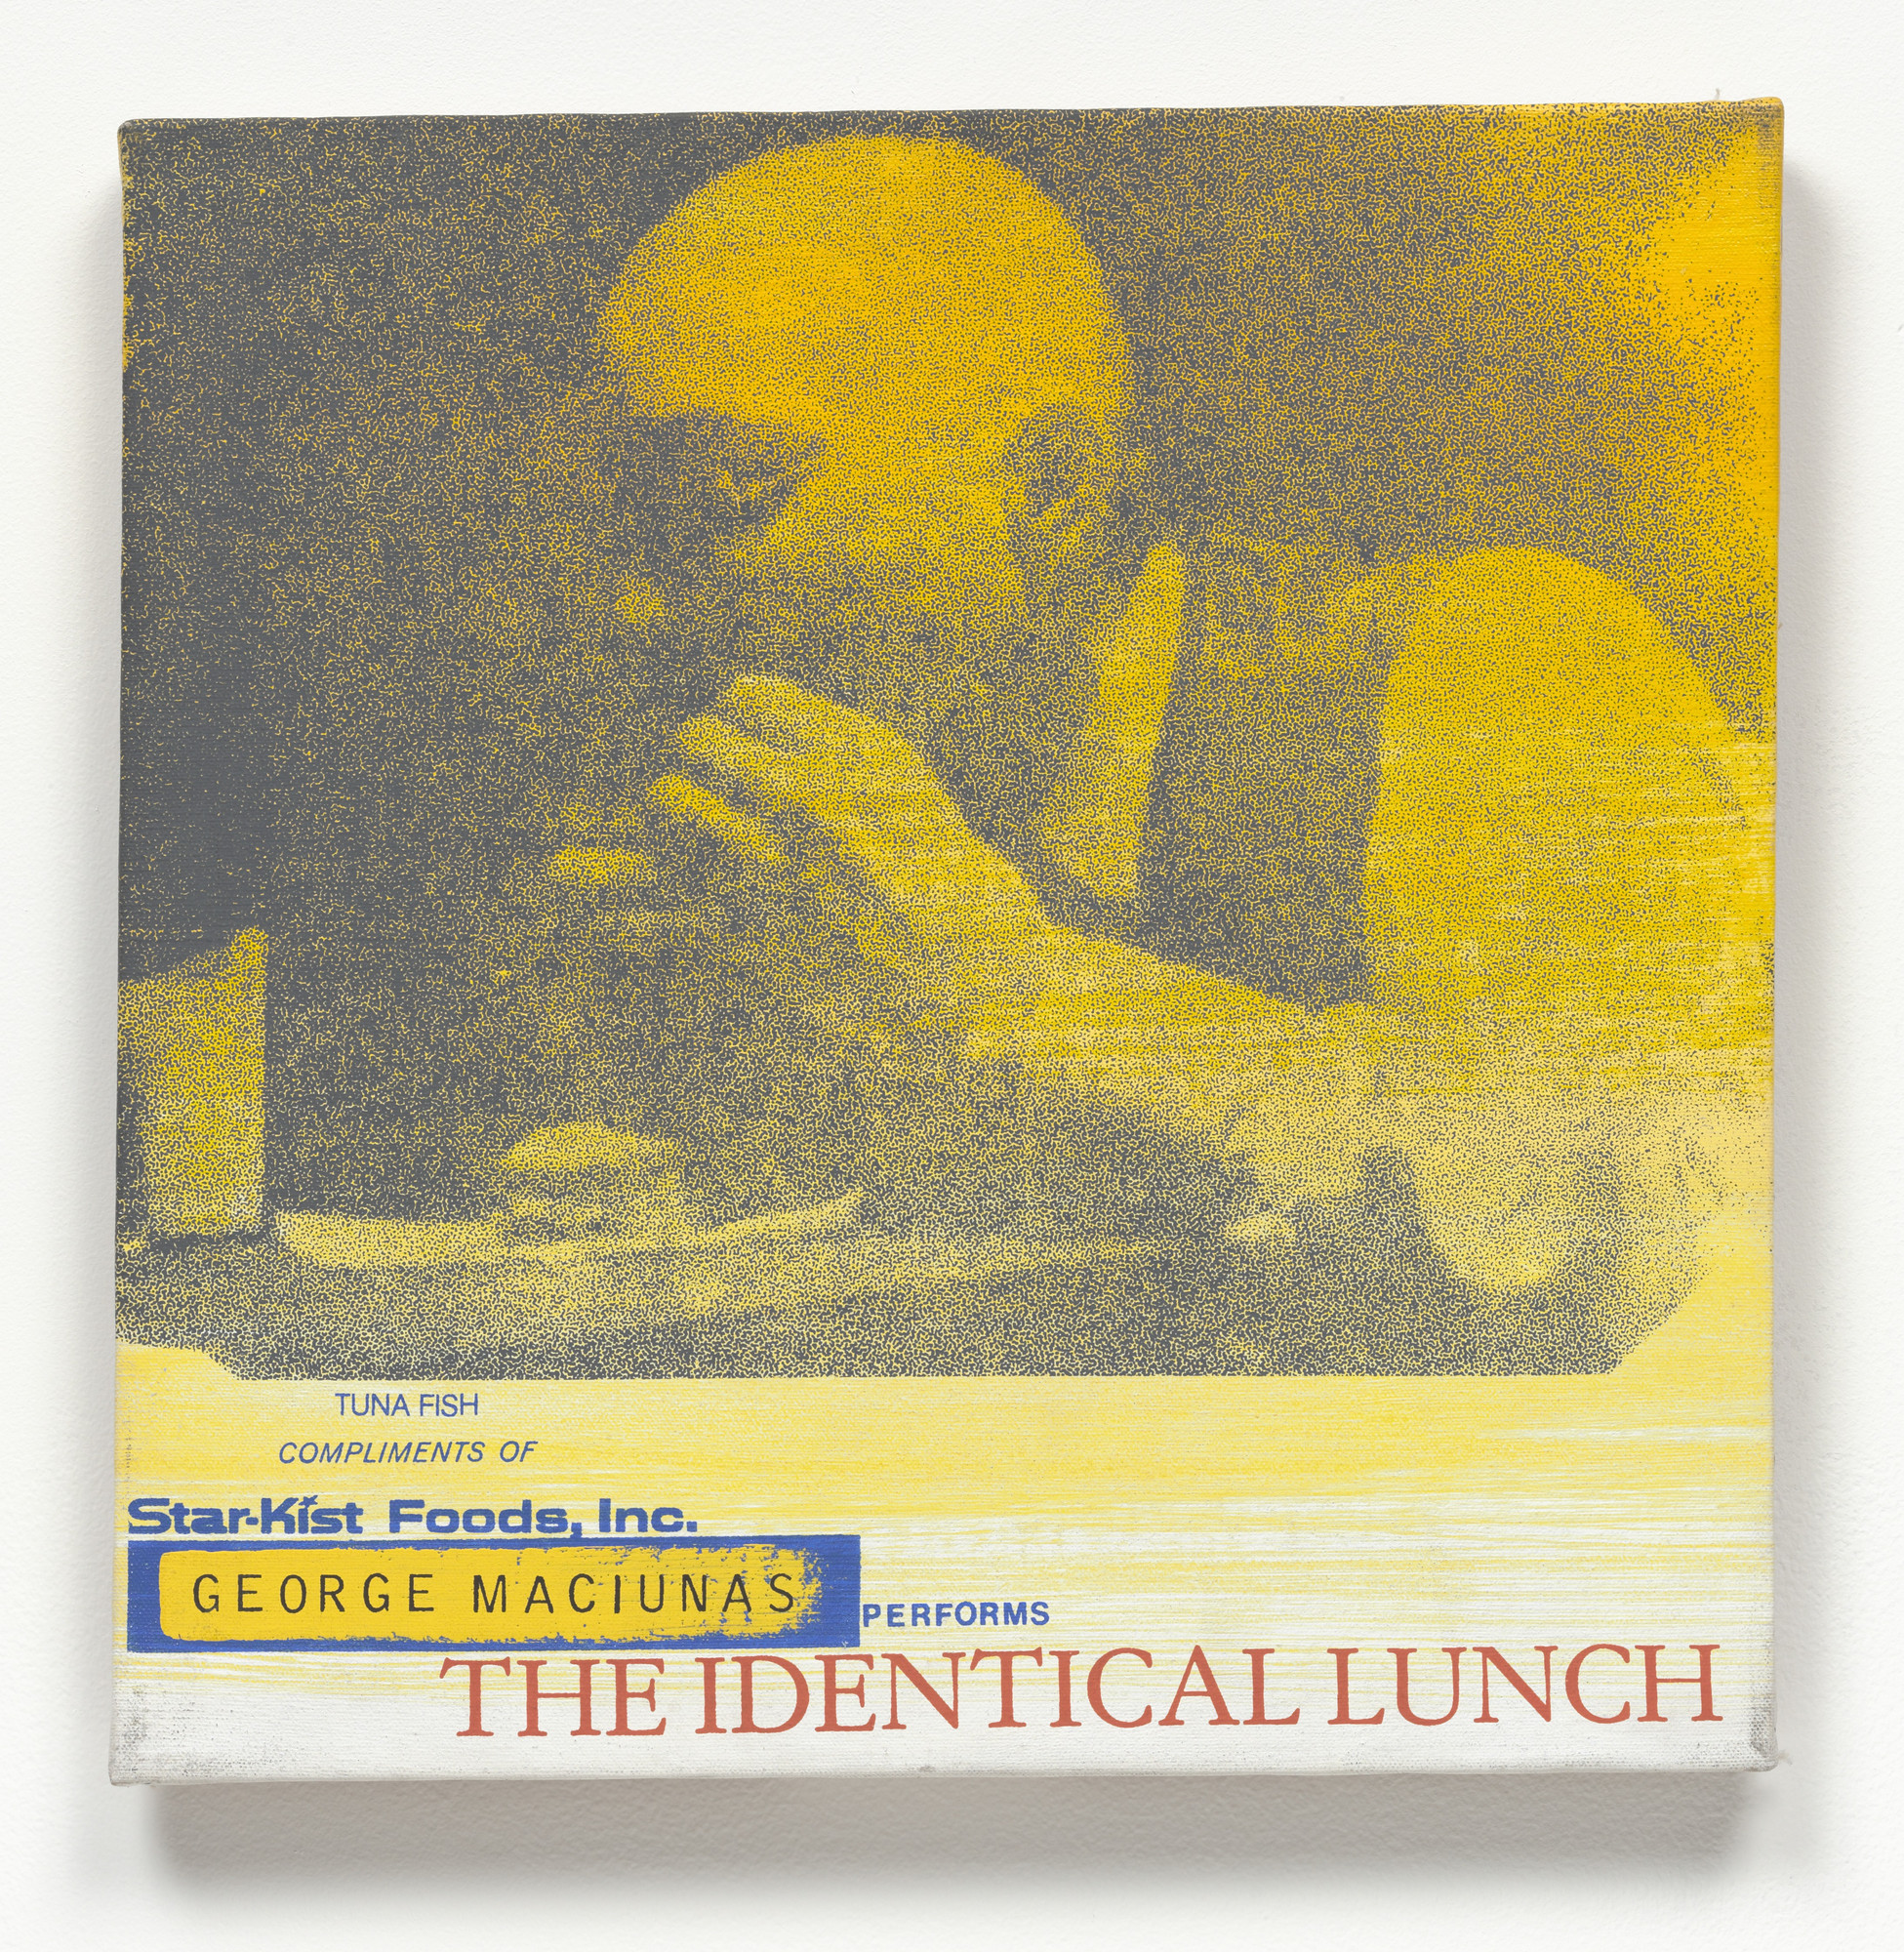 Alison Knowles. George Maciunas Performs The Identical Lunch. 1969, realized 1973